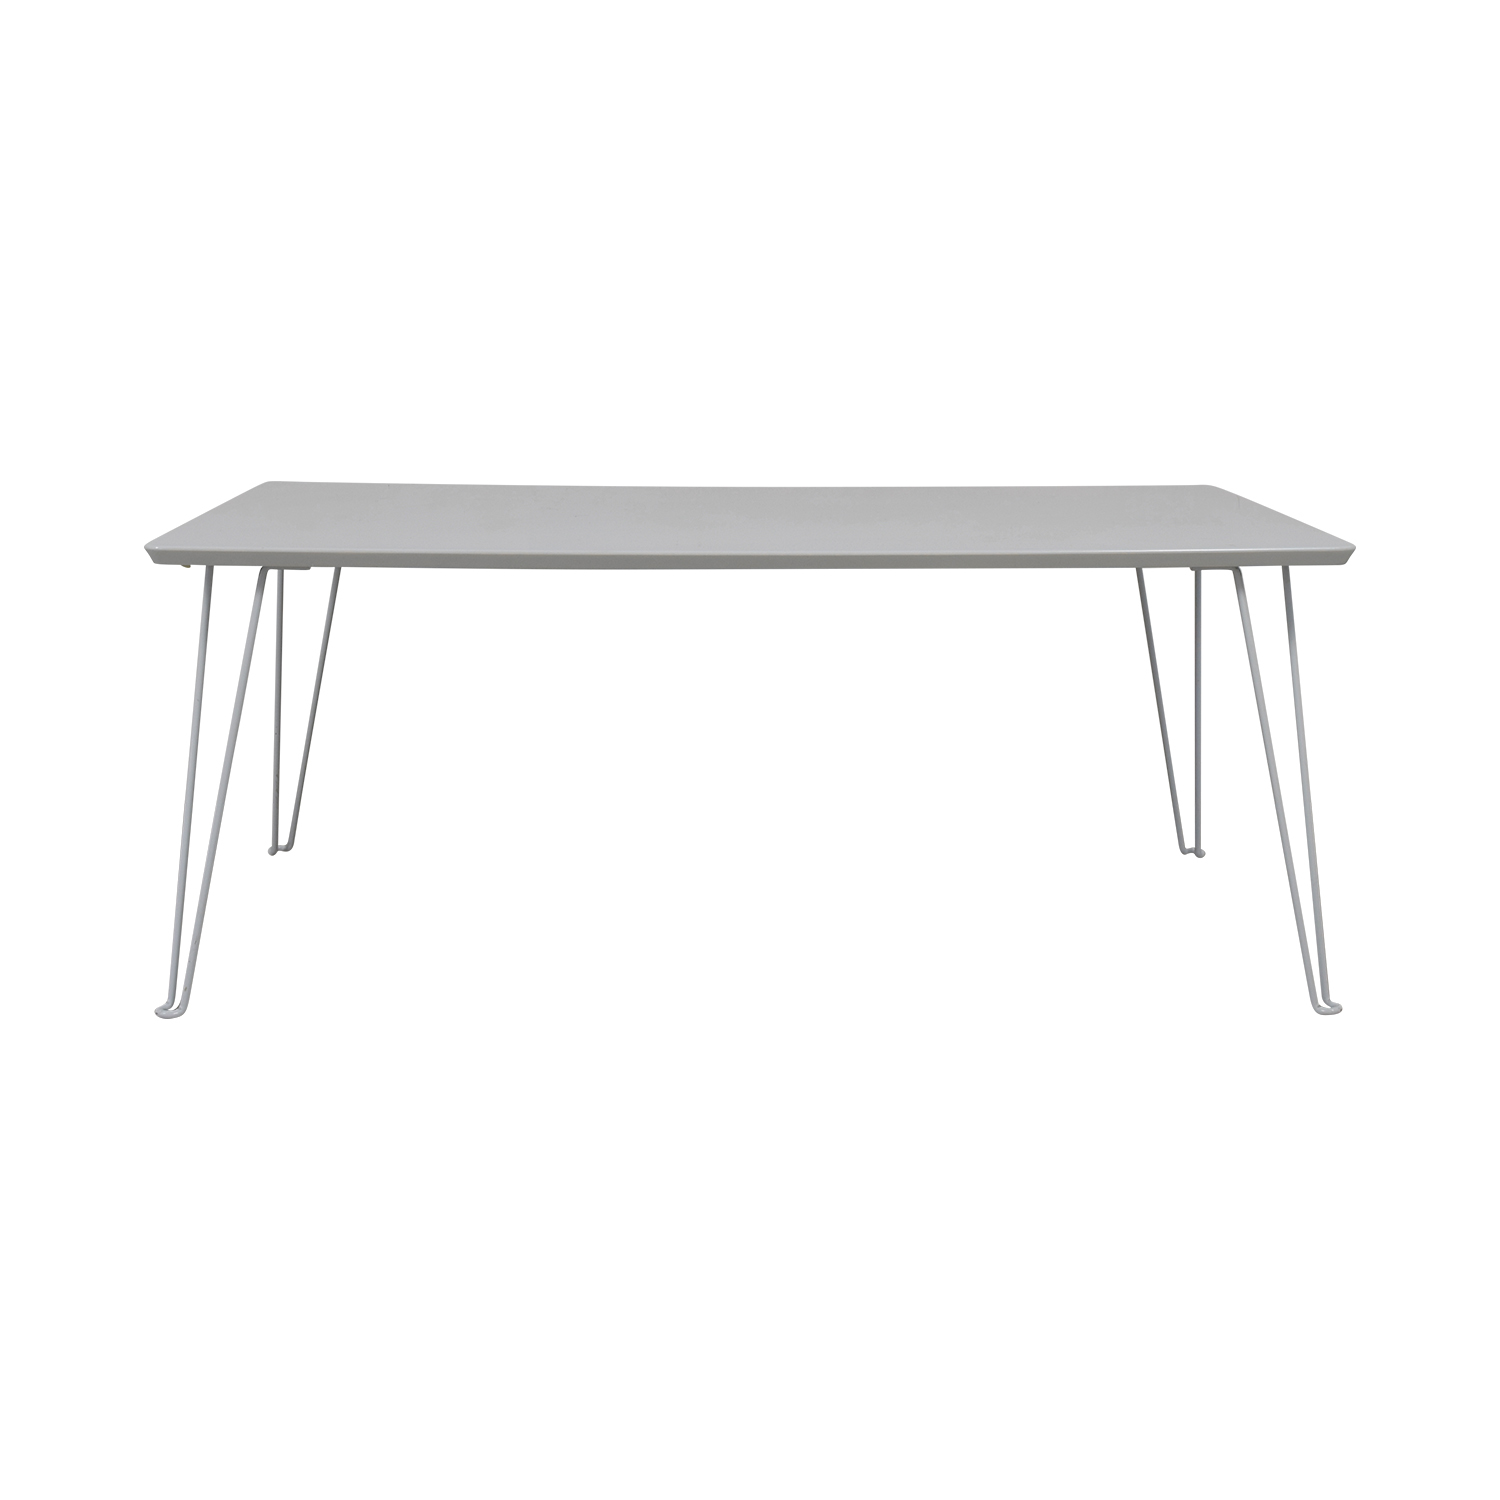 CB2 CB2 Bobby White Dining Table Dinner Tables